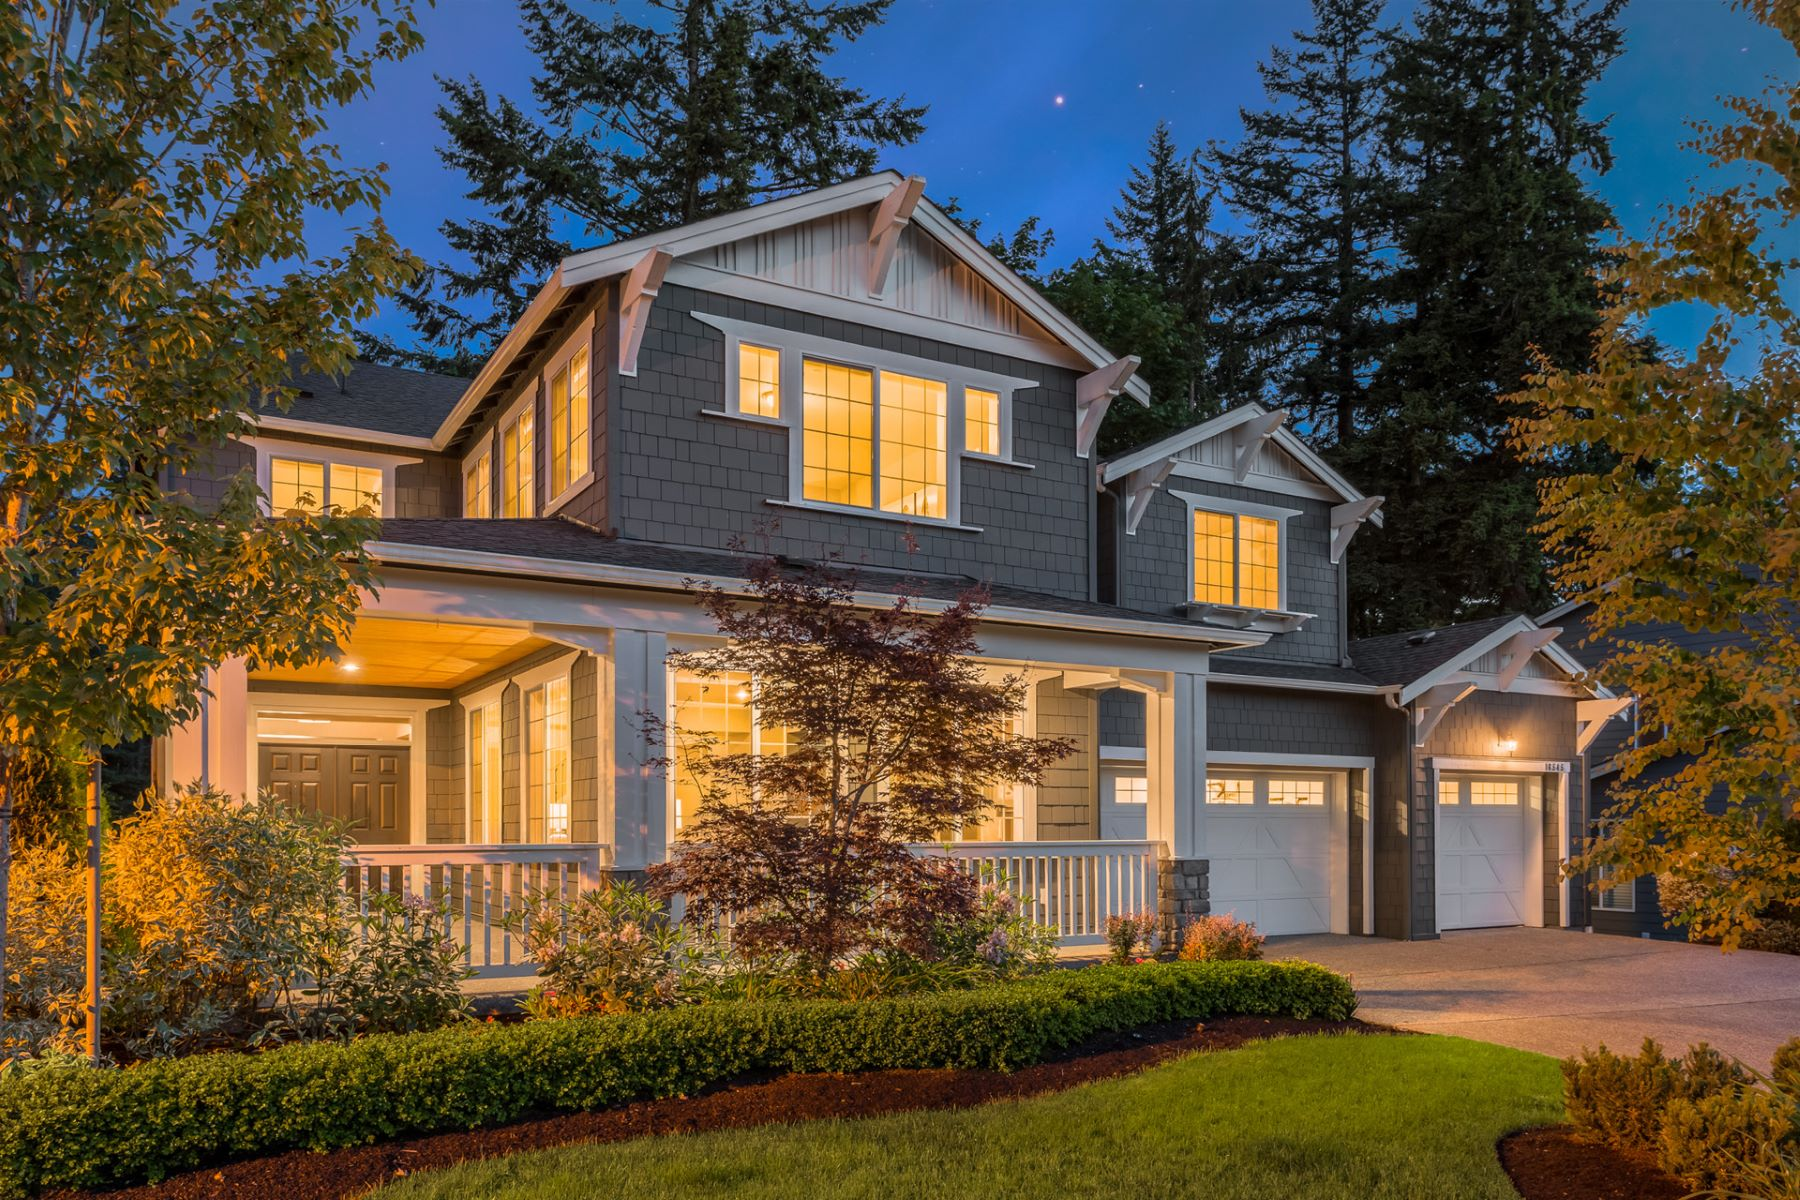 Single Family Home for Sale at Refined Cougar Mountain Living 16545 SE 61st Place Bellevue, Washington, 98006 United States